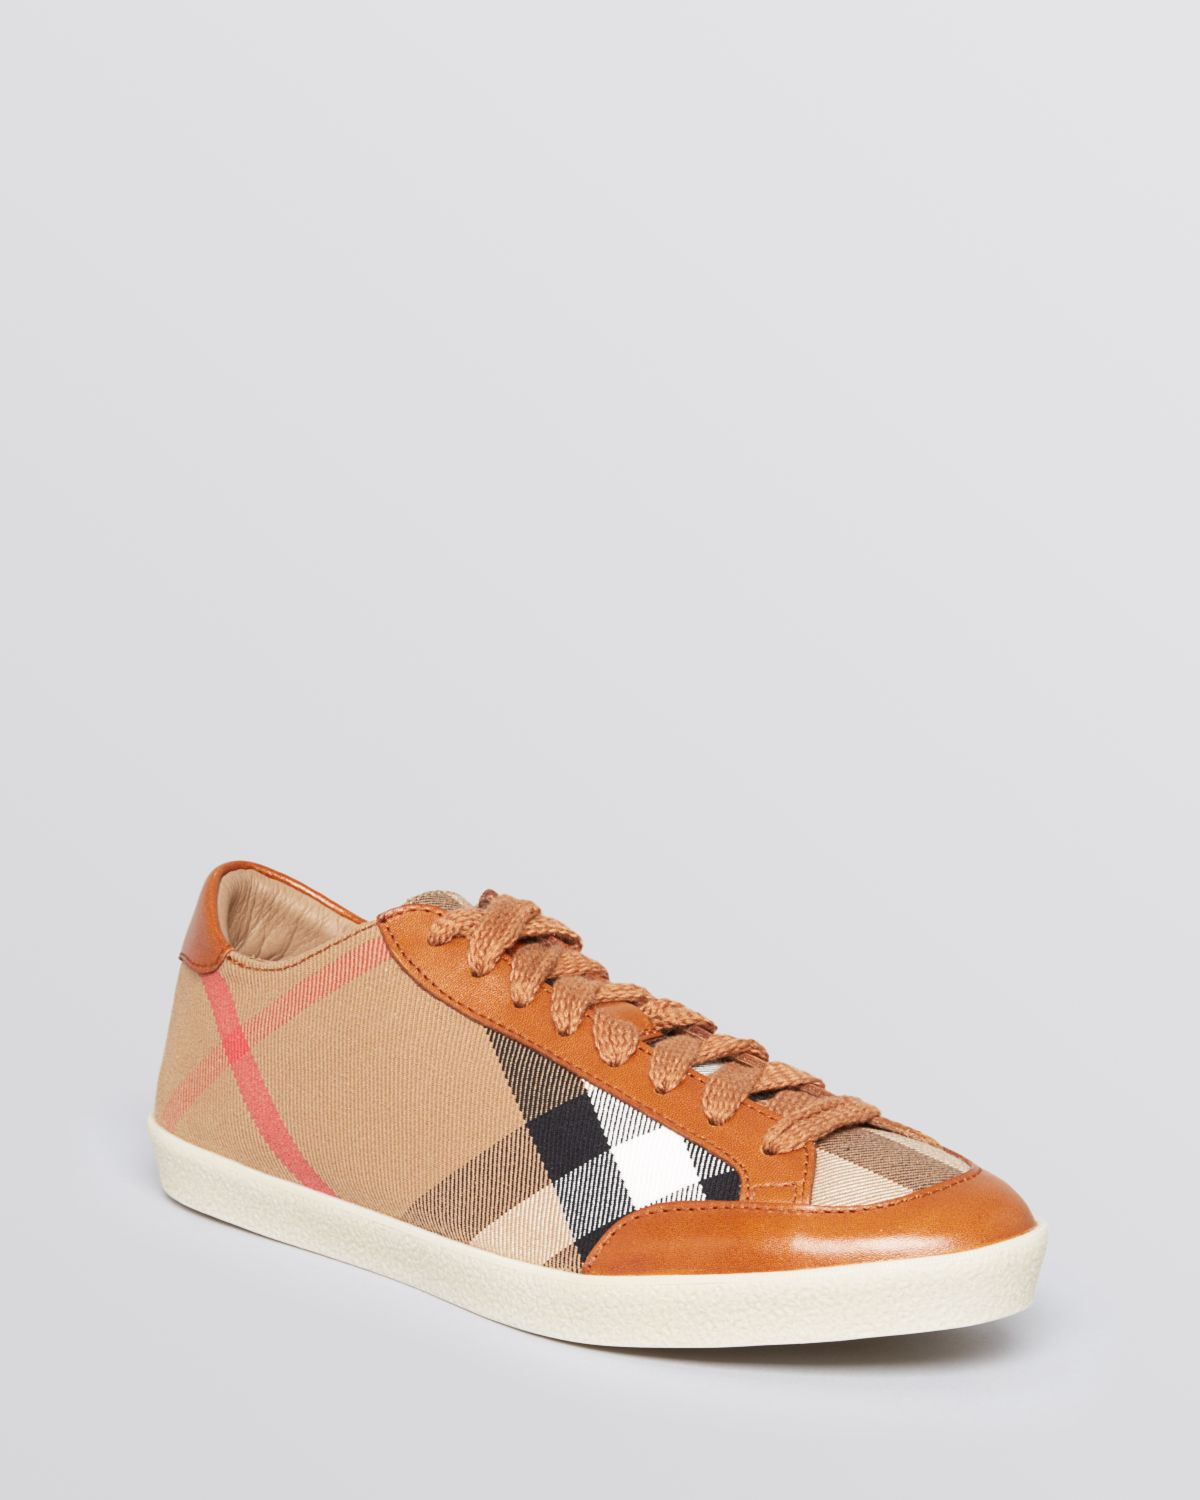 Burberry Lace Up Sneakers Hartfield